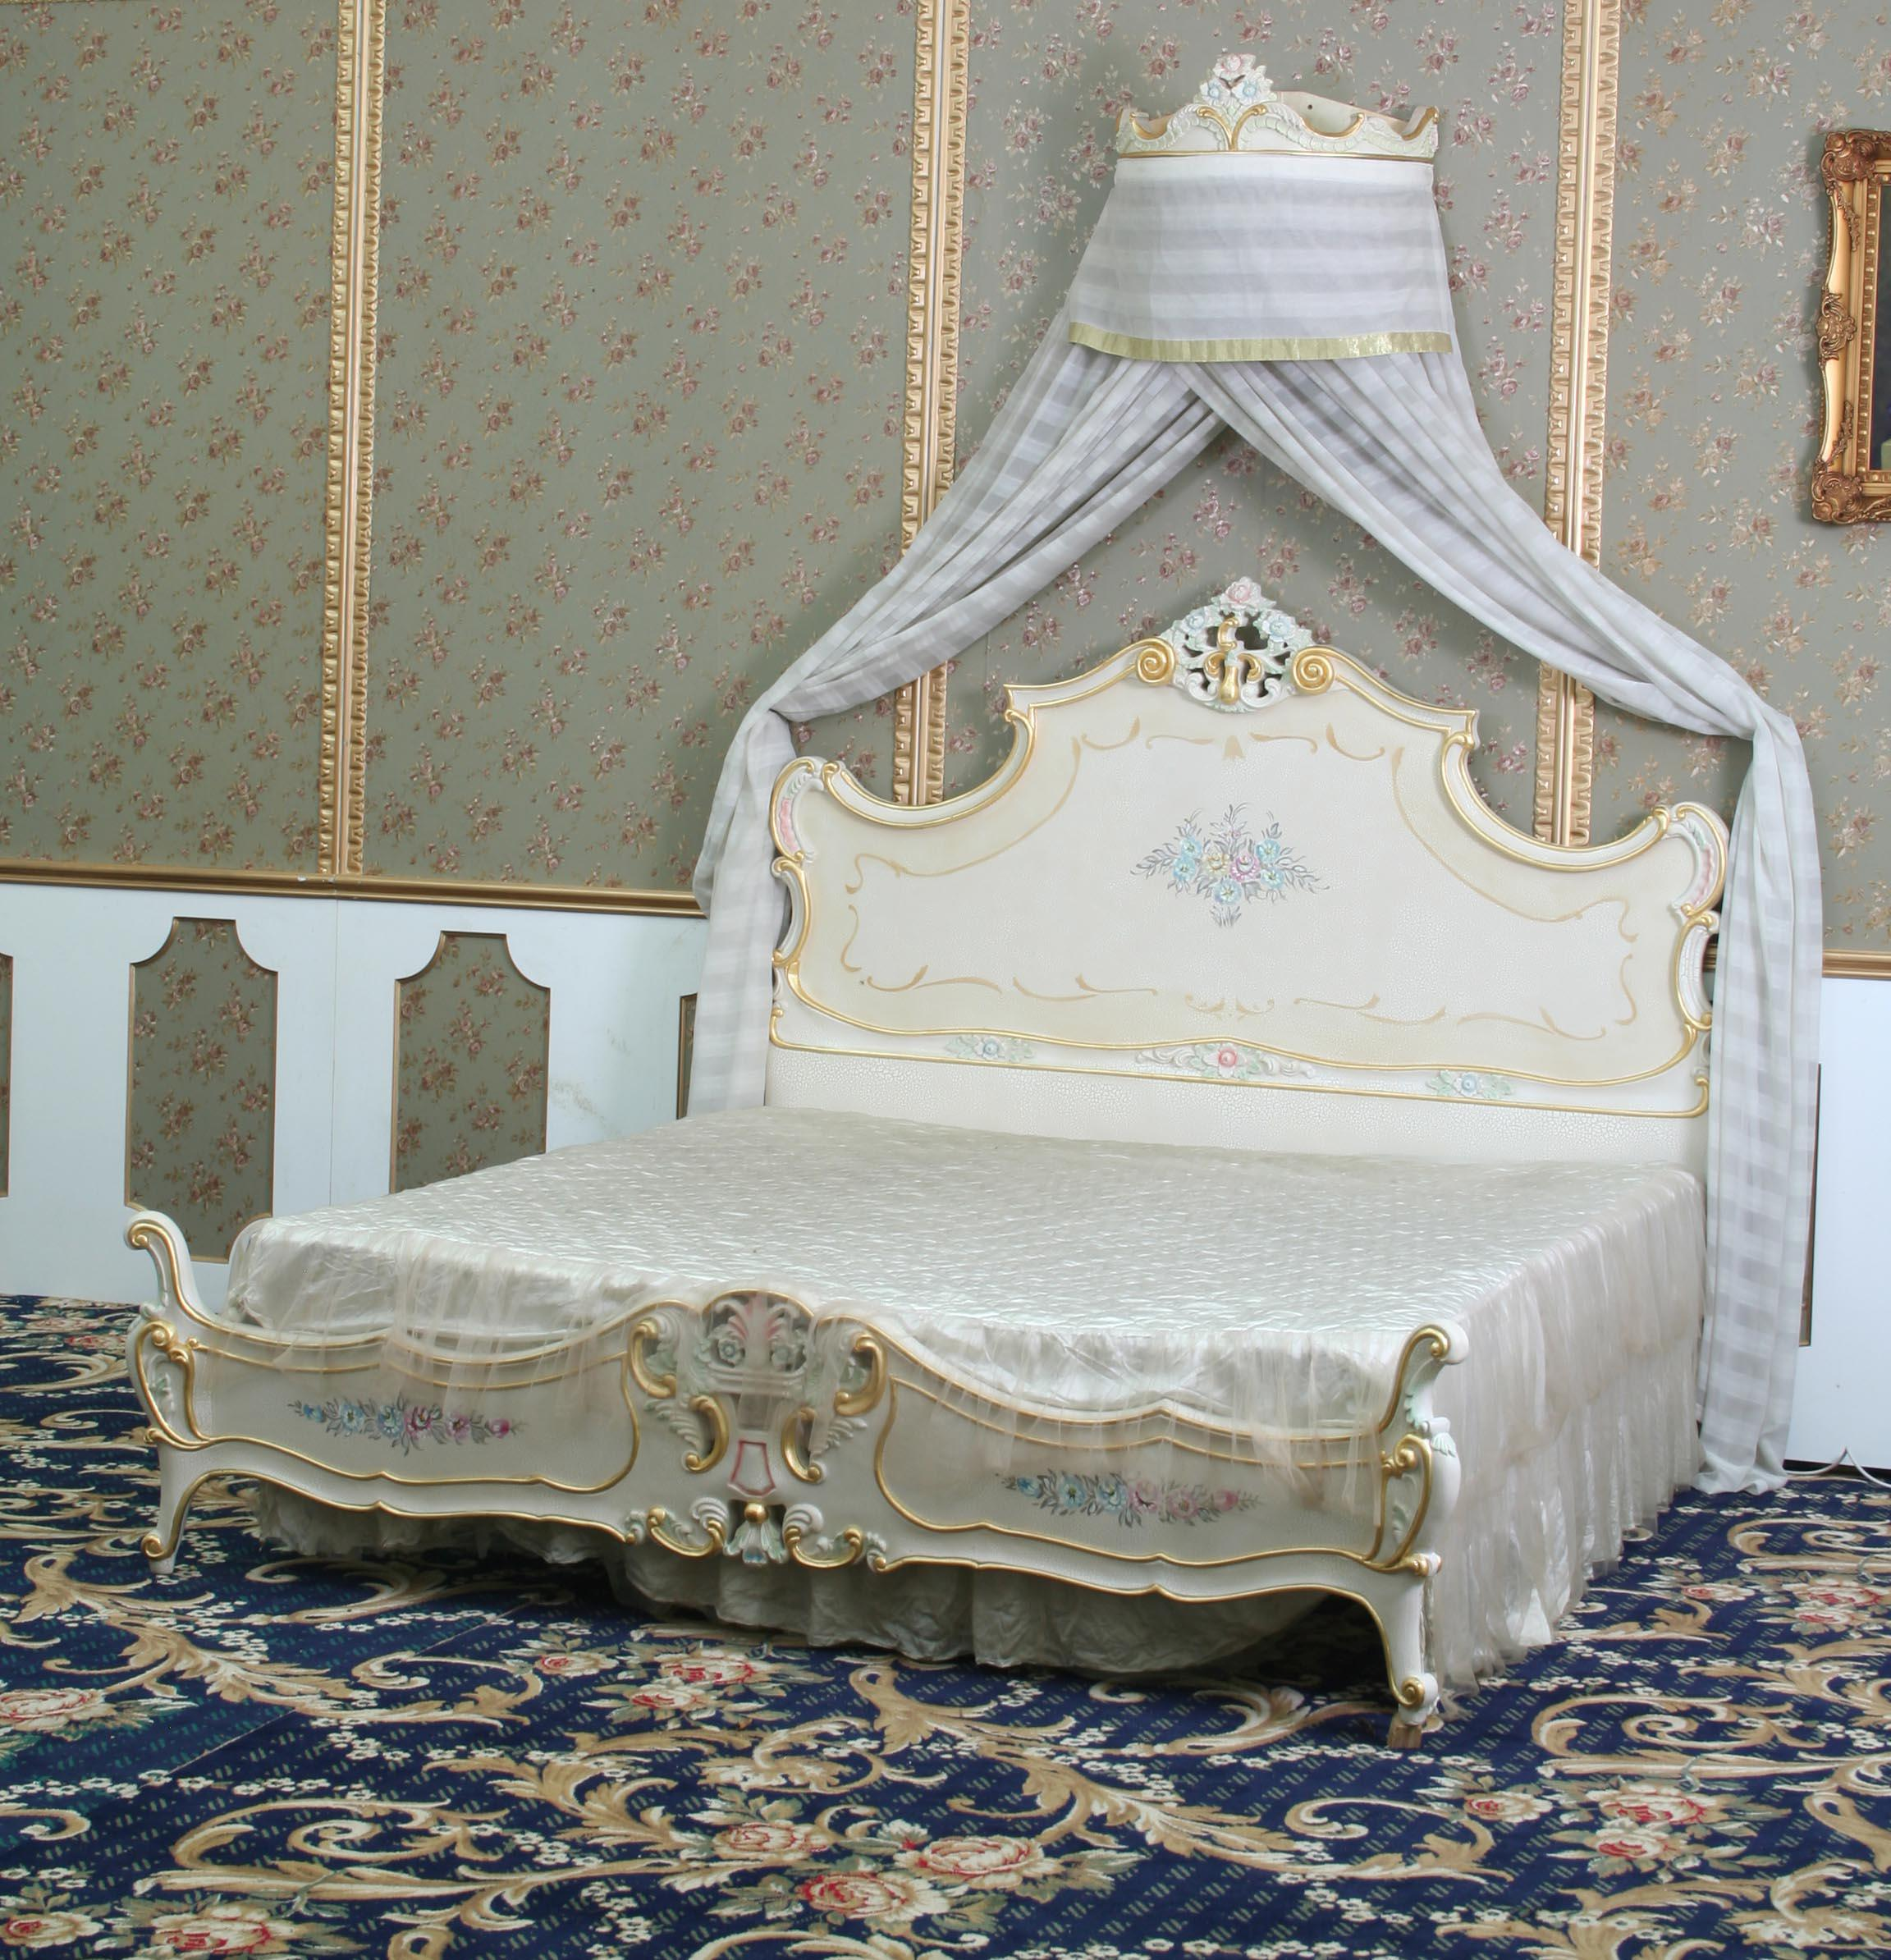 Selling Bedroom Furniture 2017 Palace Royal Furniture Fine French Furniture Hot Selling